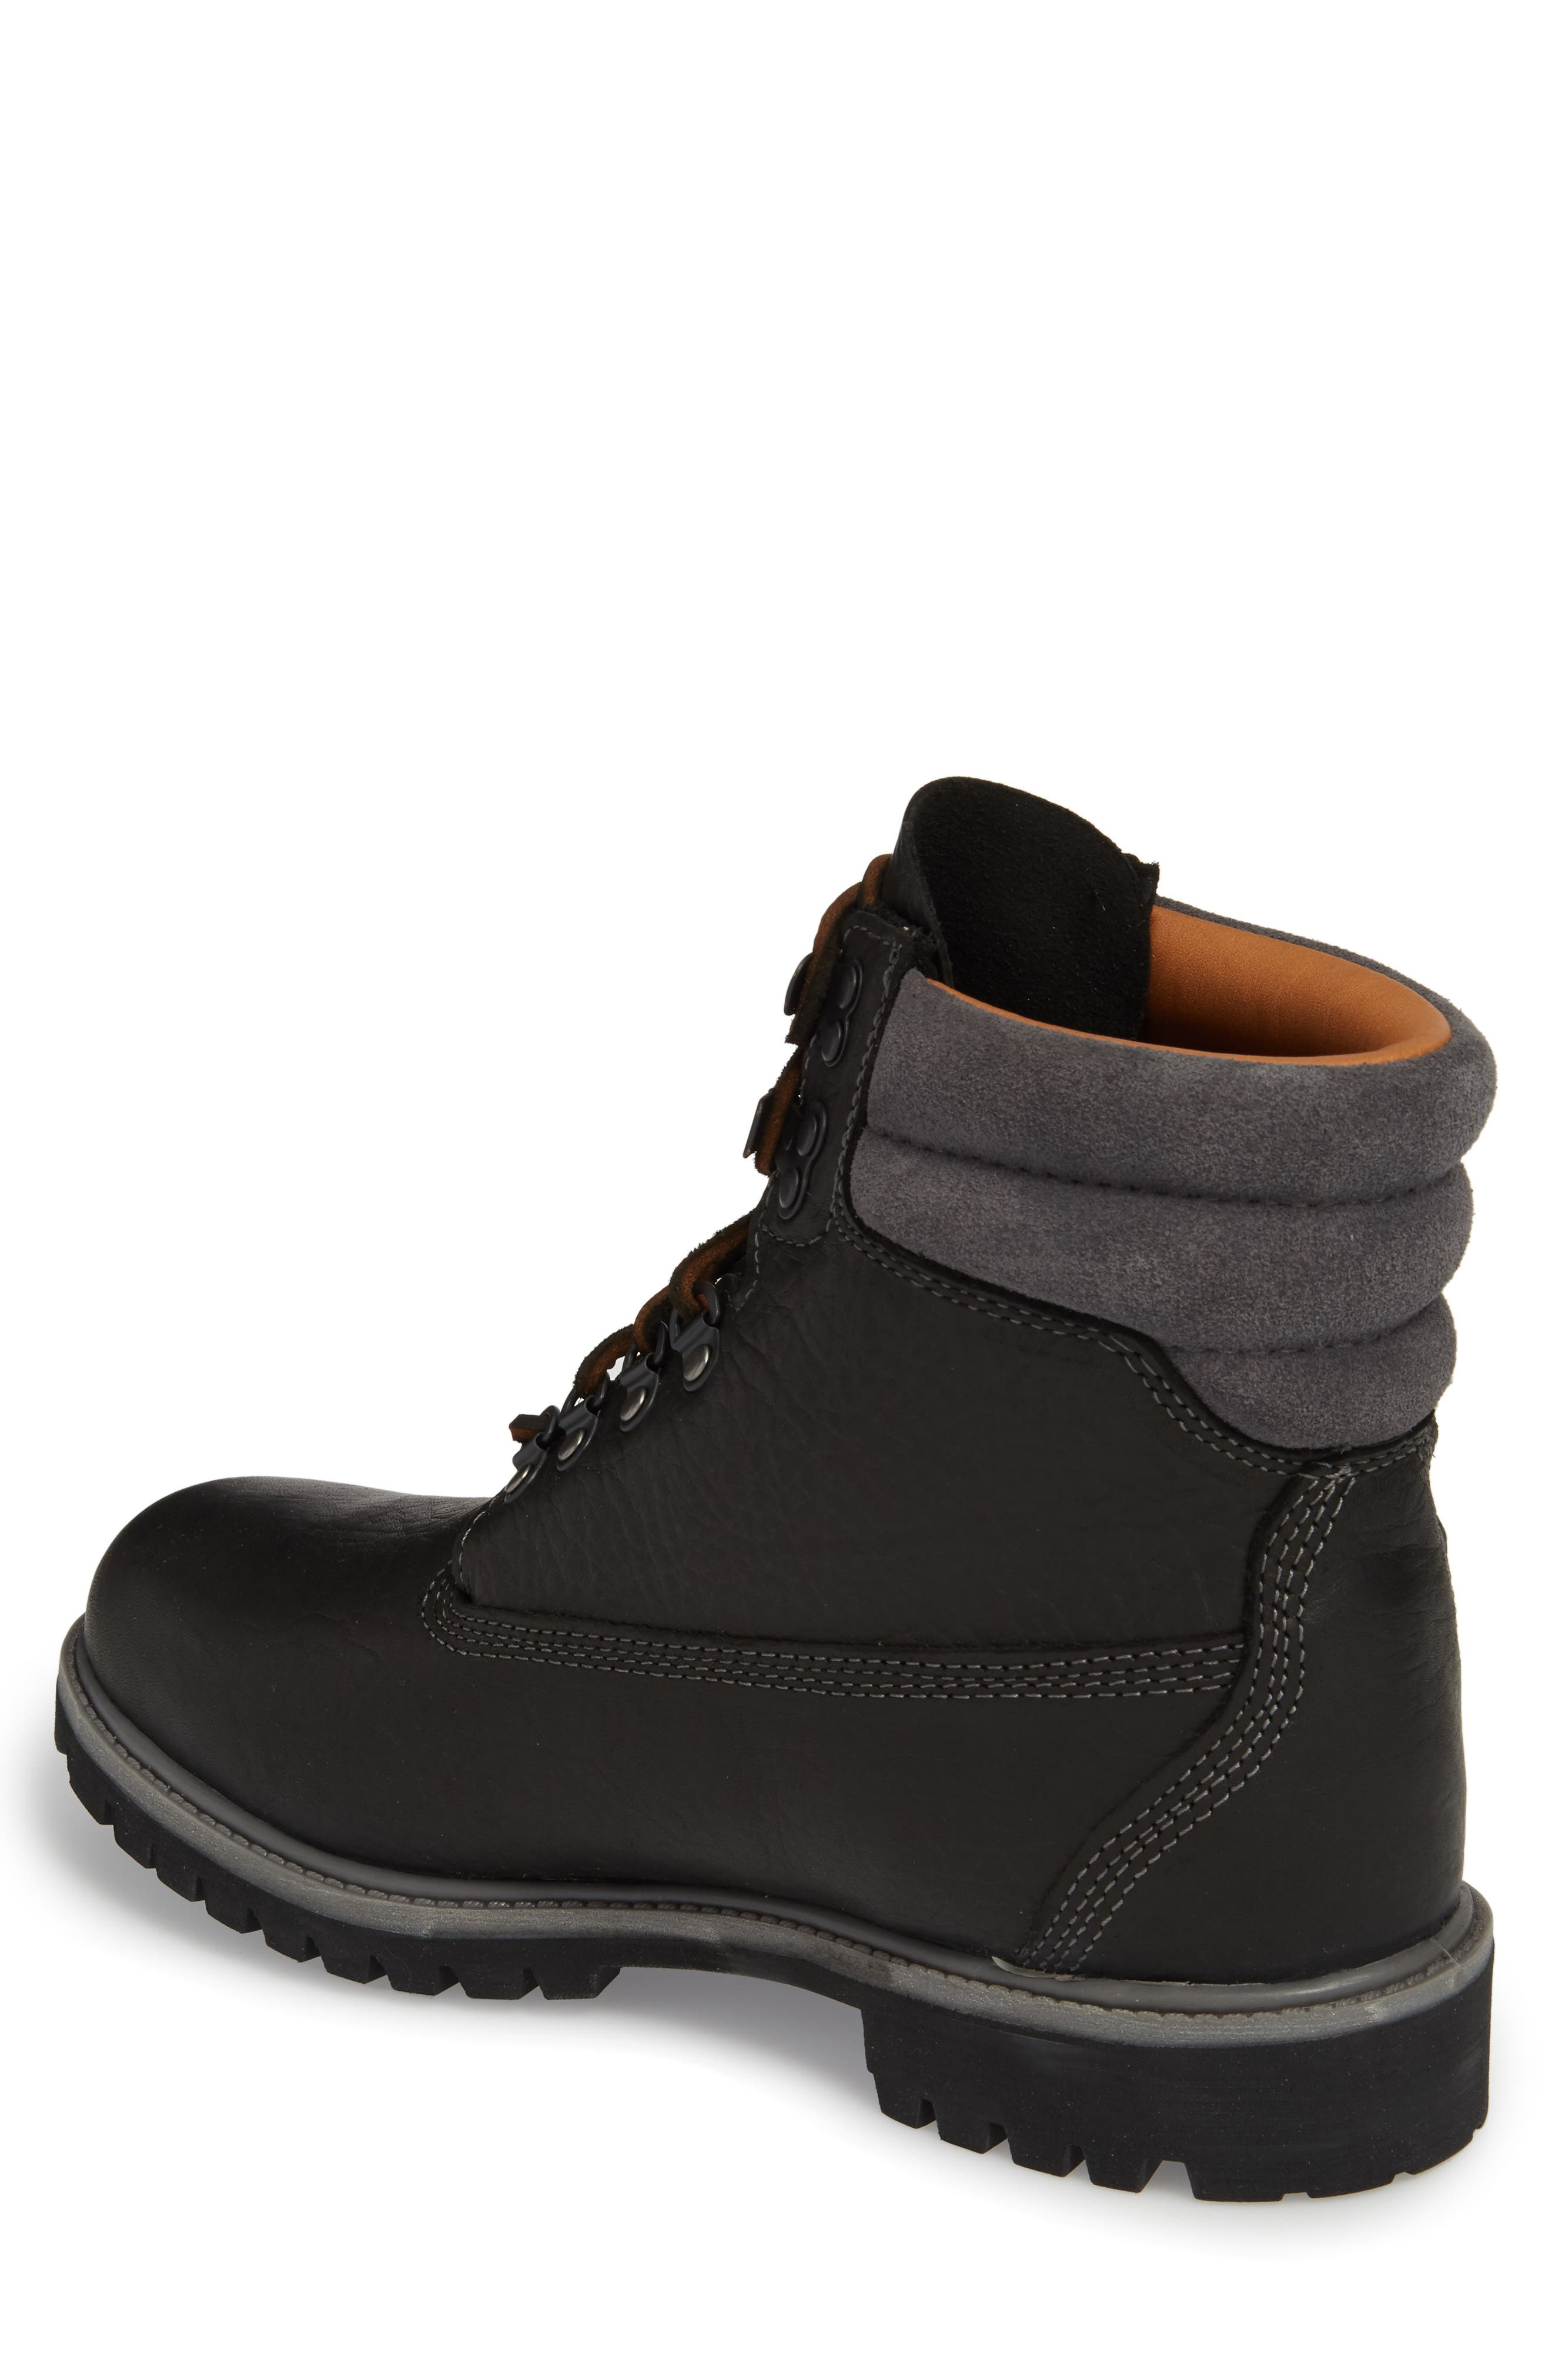 640 Below Plain Toe Boot,                             Alternate thumbnail 2, color,                             Black Highway Leather